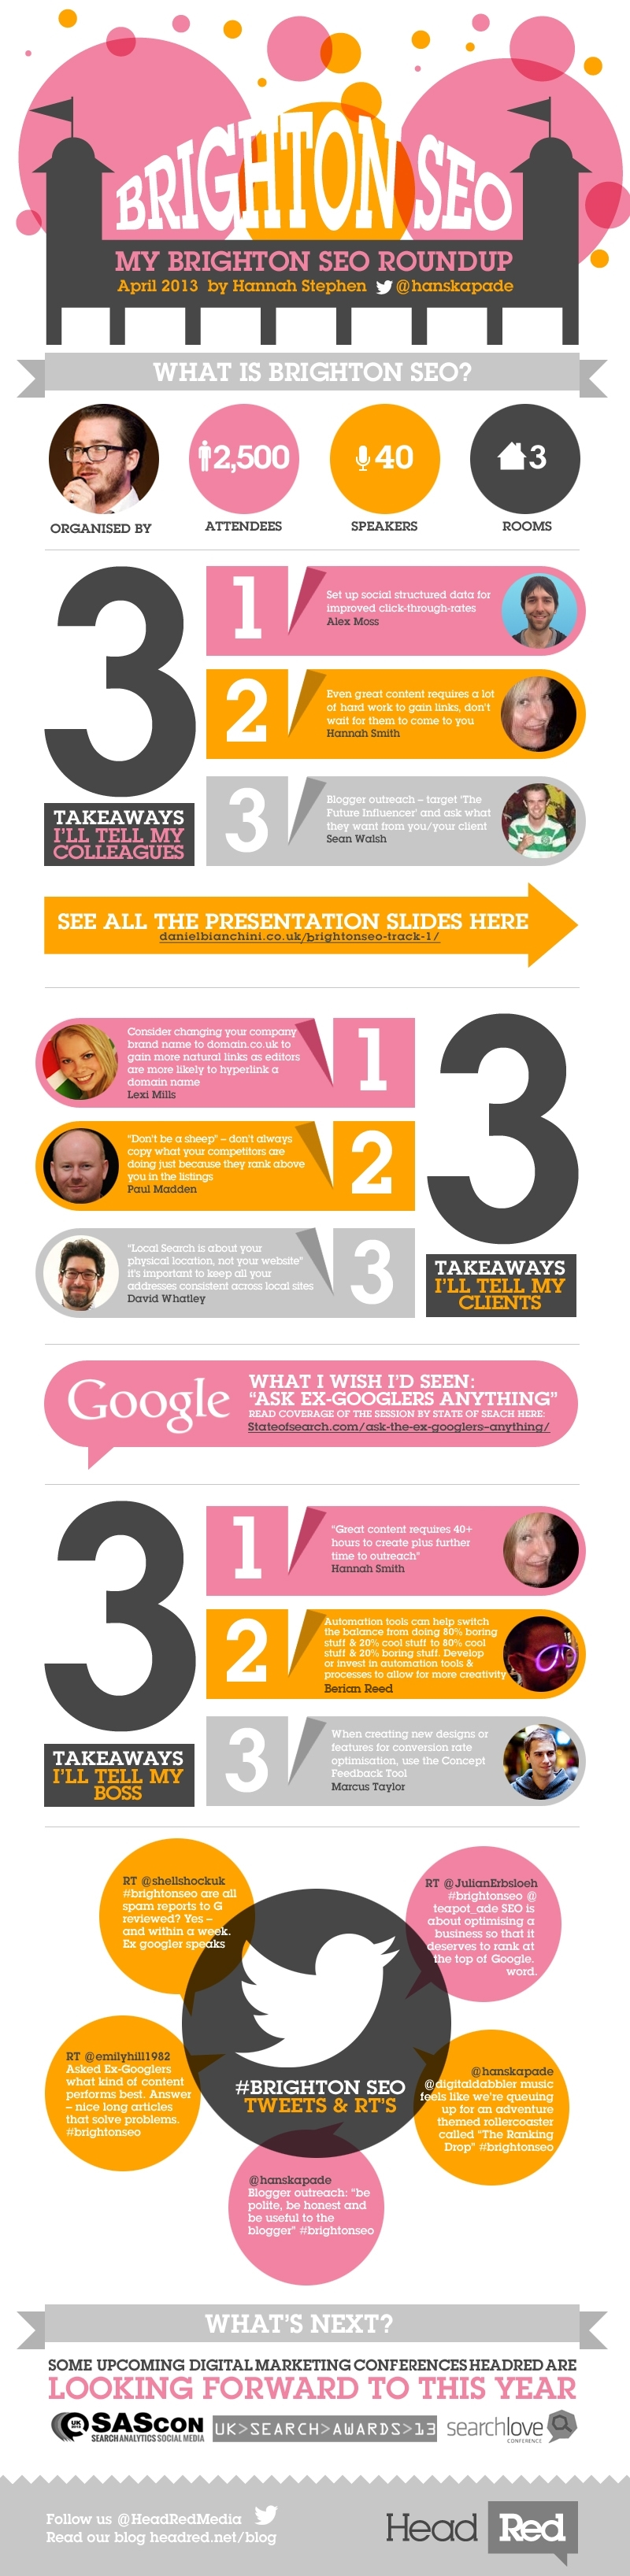 HeadRed BrightonSEO Infographic